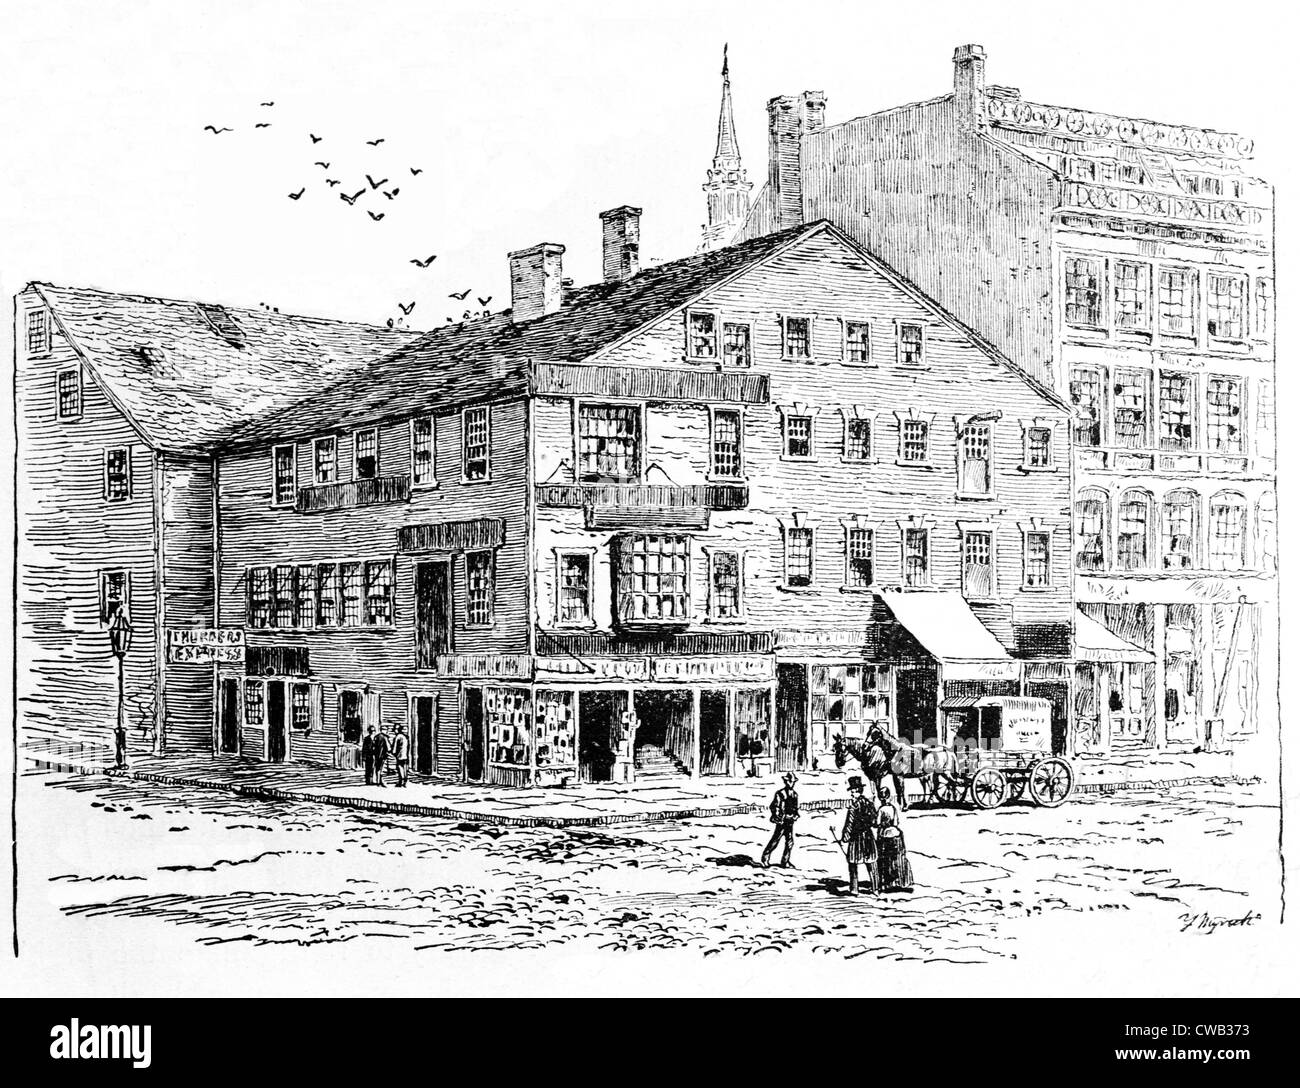 Rhode Island, Exchange Coffee House, constructed in 1750, 1-5 Market Square, Providence, circa 1750. - Stock Image